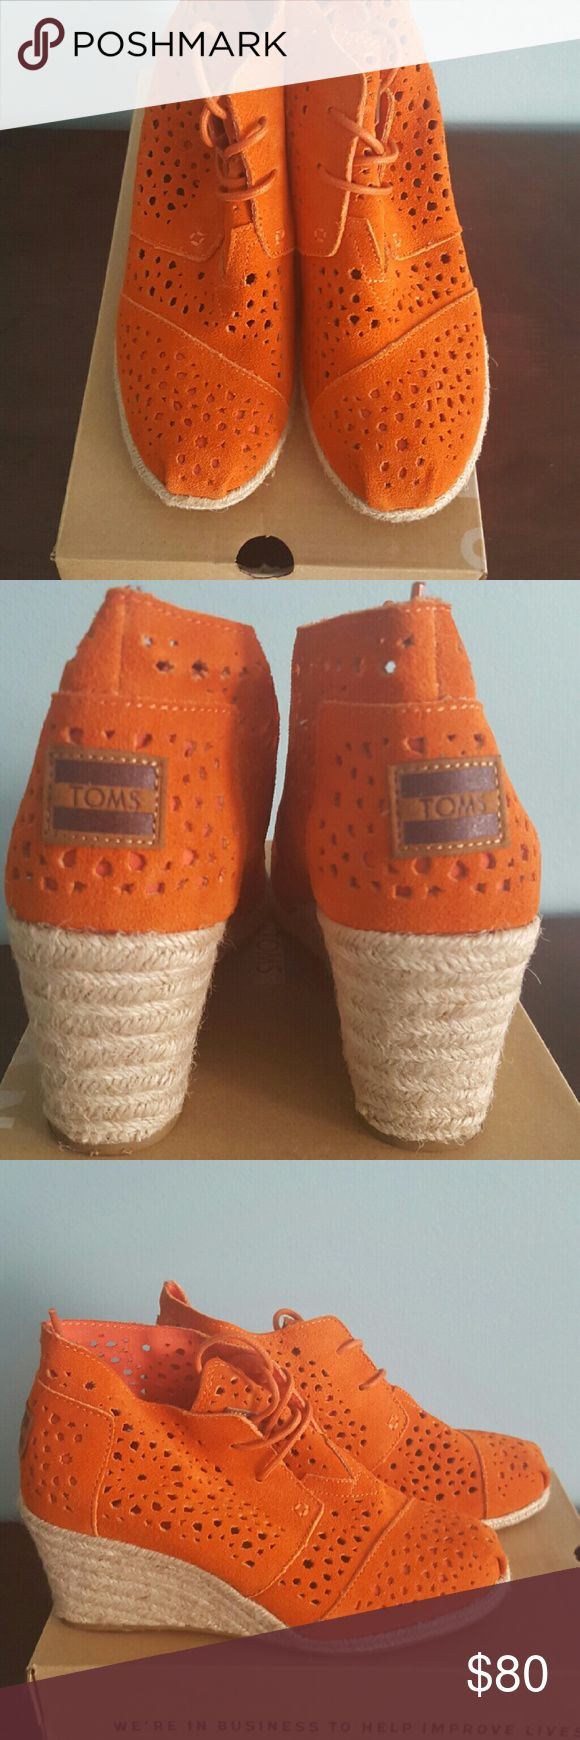 "TOMS Moroccan Cutout Suede Wedge Boot, Orange Perforated suede upper w/tonal topstitching. Ankle-high shaft; 2 3/4""H; 11"" circumference. 2 3/4"" braided jute wedge heel. Lace up vamp. Logo applique on tongue & heel counter. Rubber & jute sole provides traction. TOMS Shoes Ankle Boots & Booties"